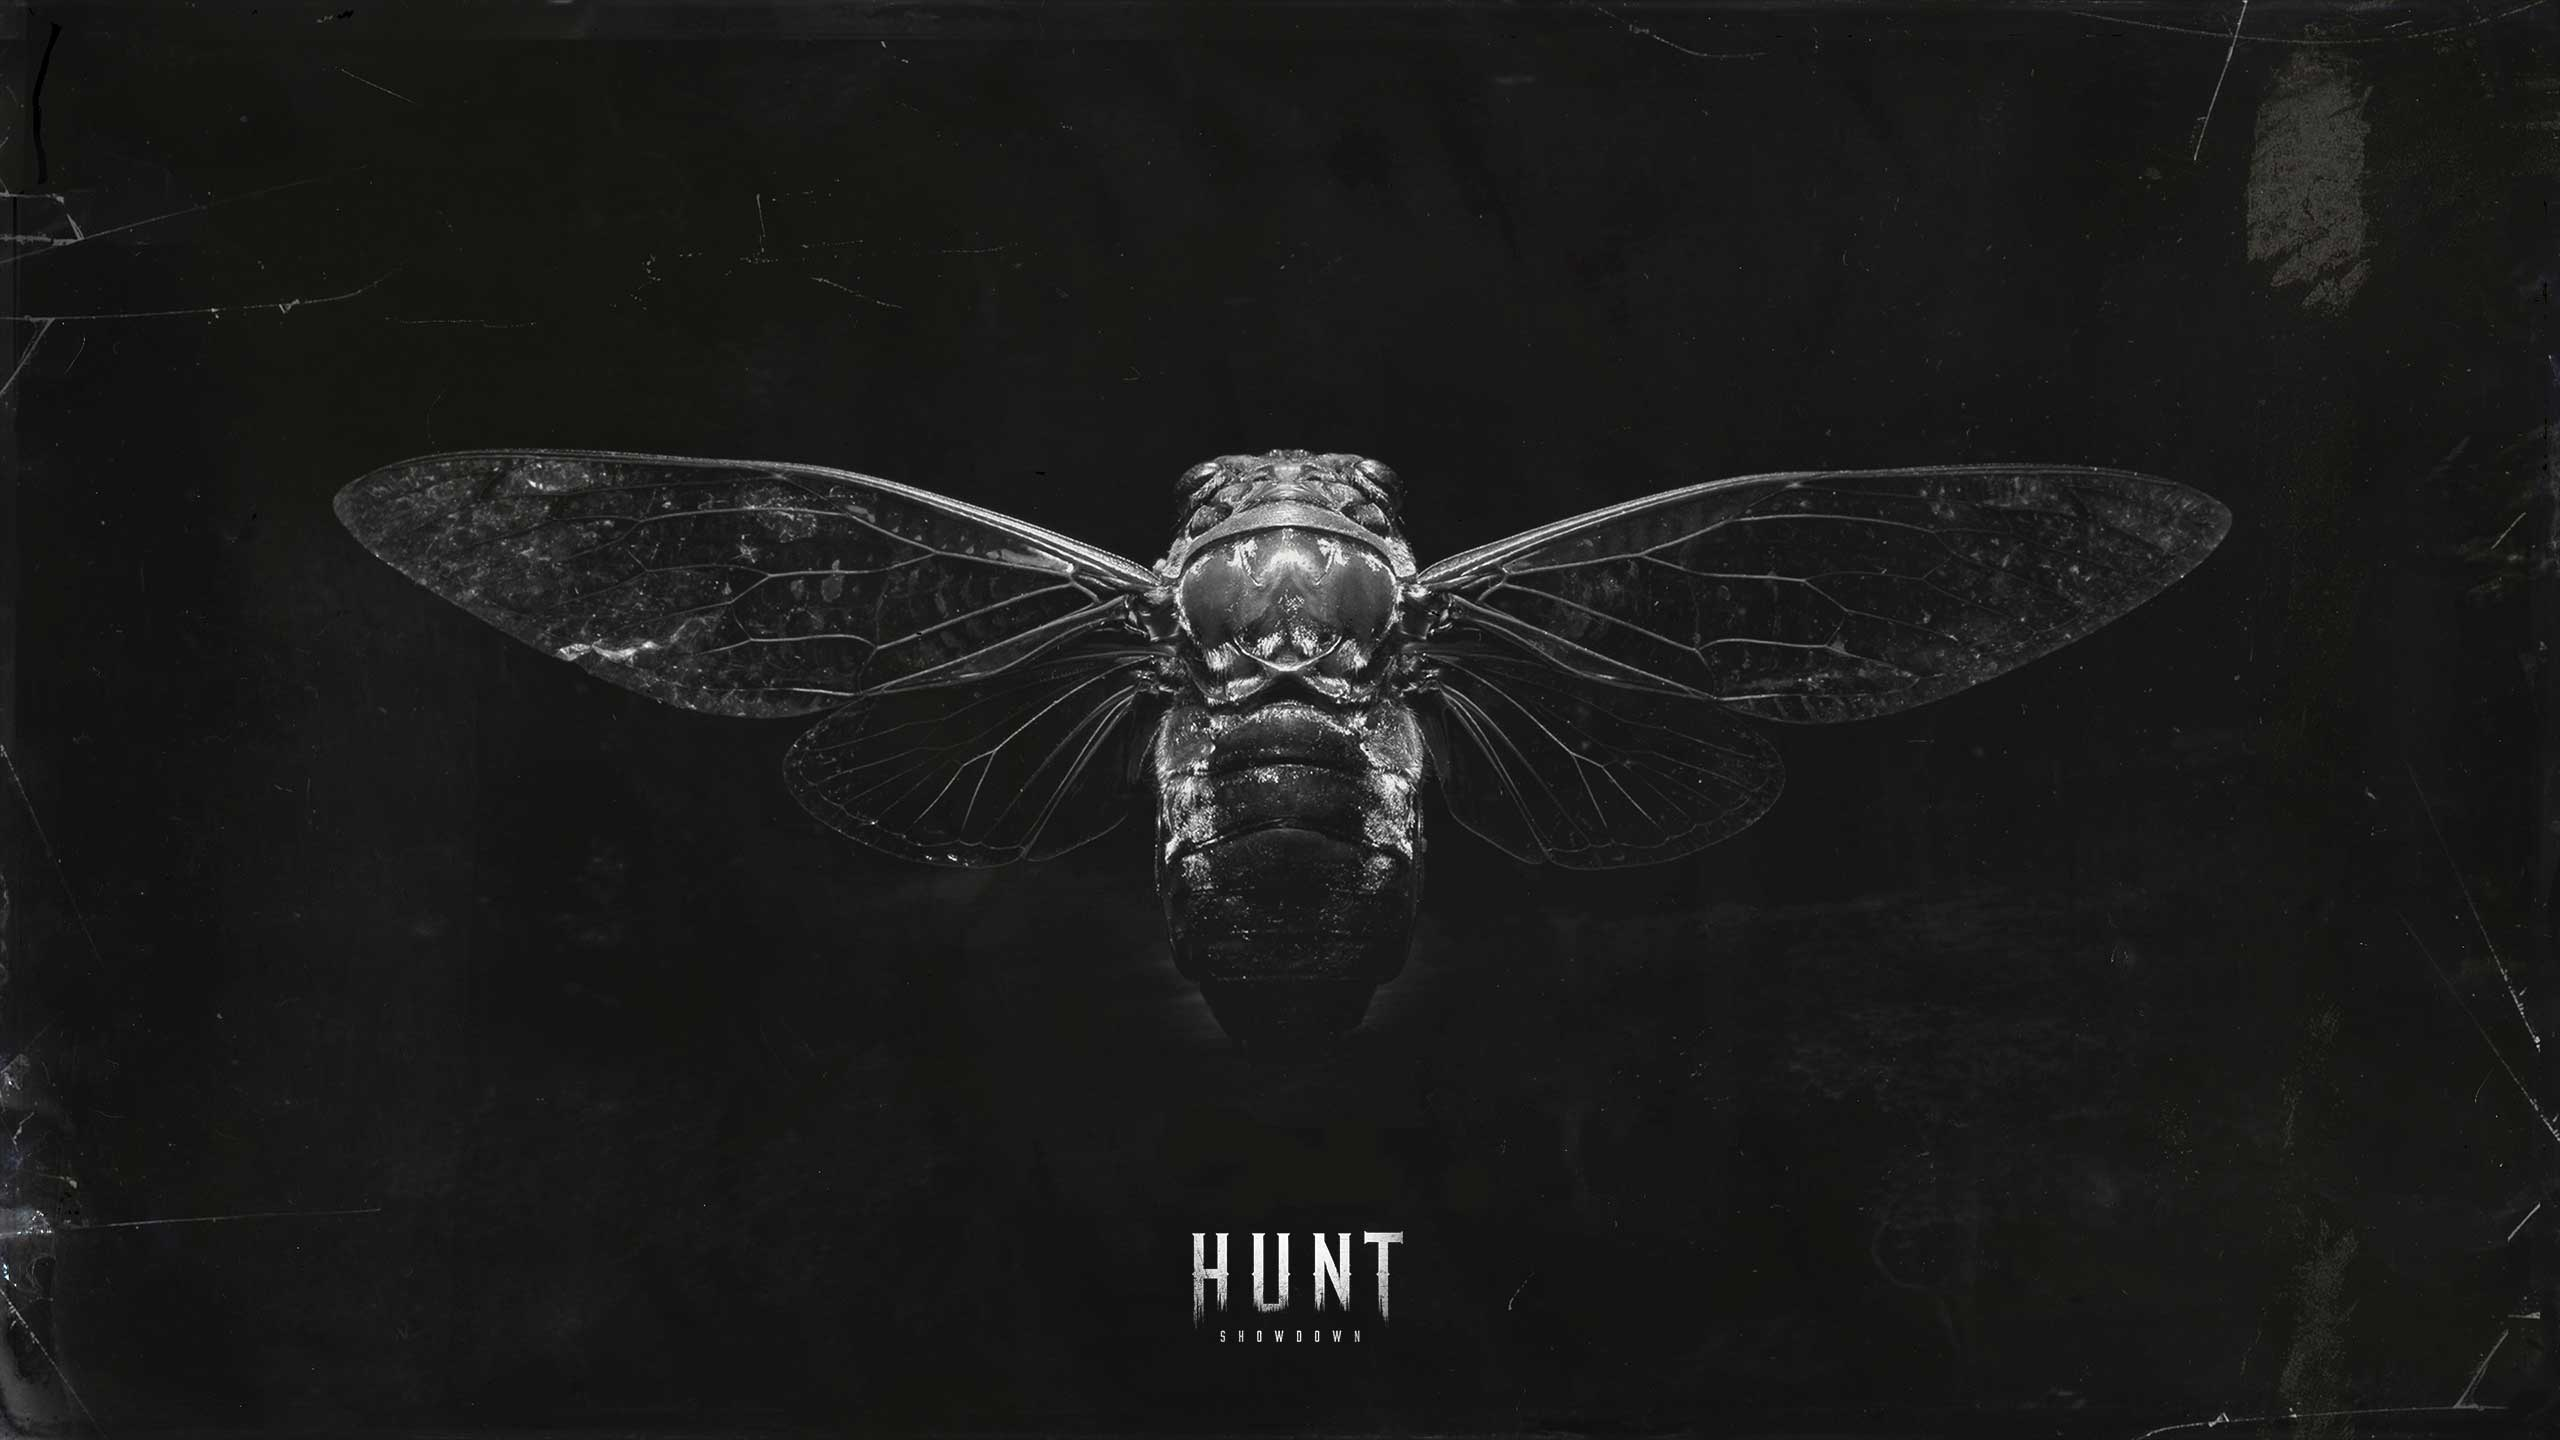 Hunt Showdown Media